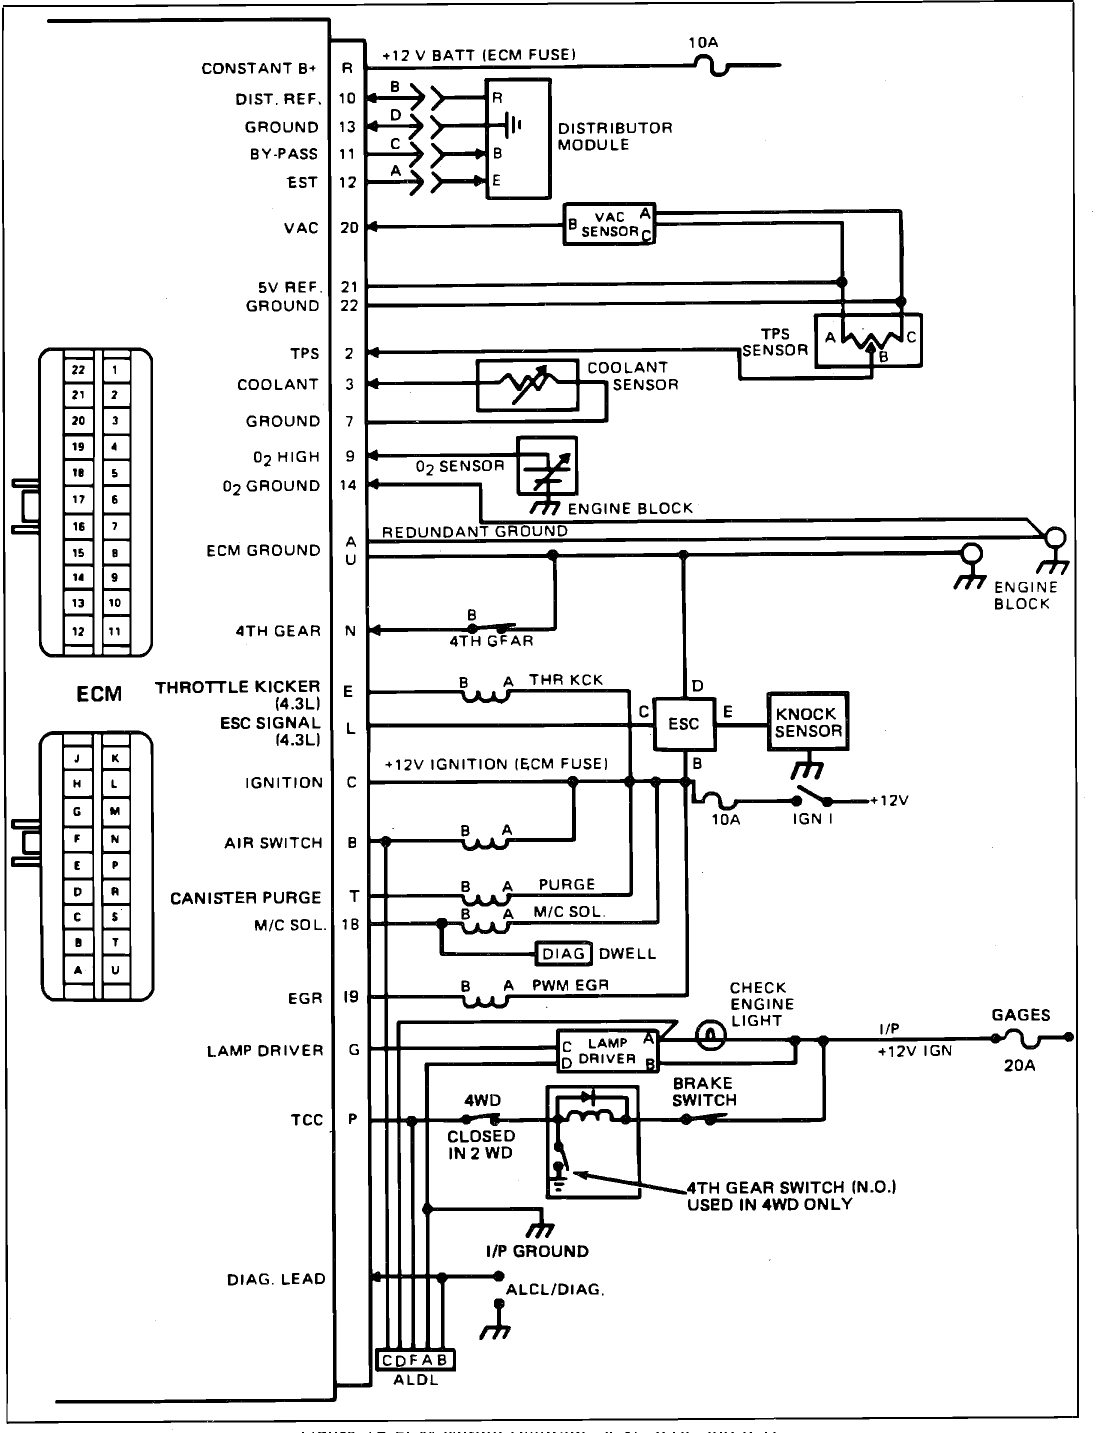 hight resolution of 1986 chevy fuse box diagram wiring schematic simple wiring diagram rh 8 1 1 mara cujas de 2000 monte carlo fuse box diagram 2004 monte carlo fuse box